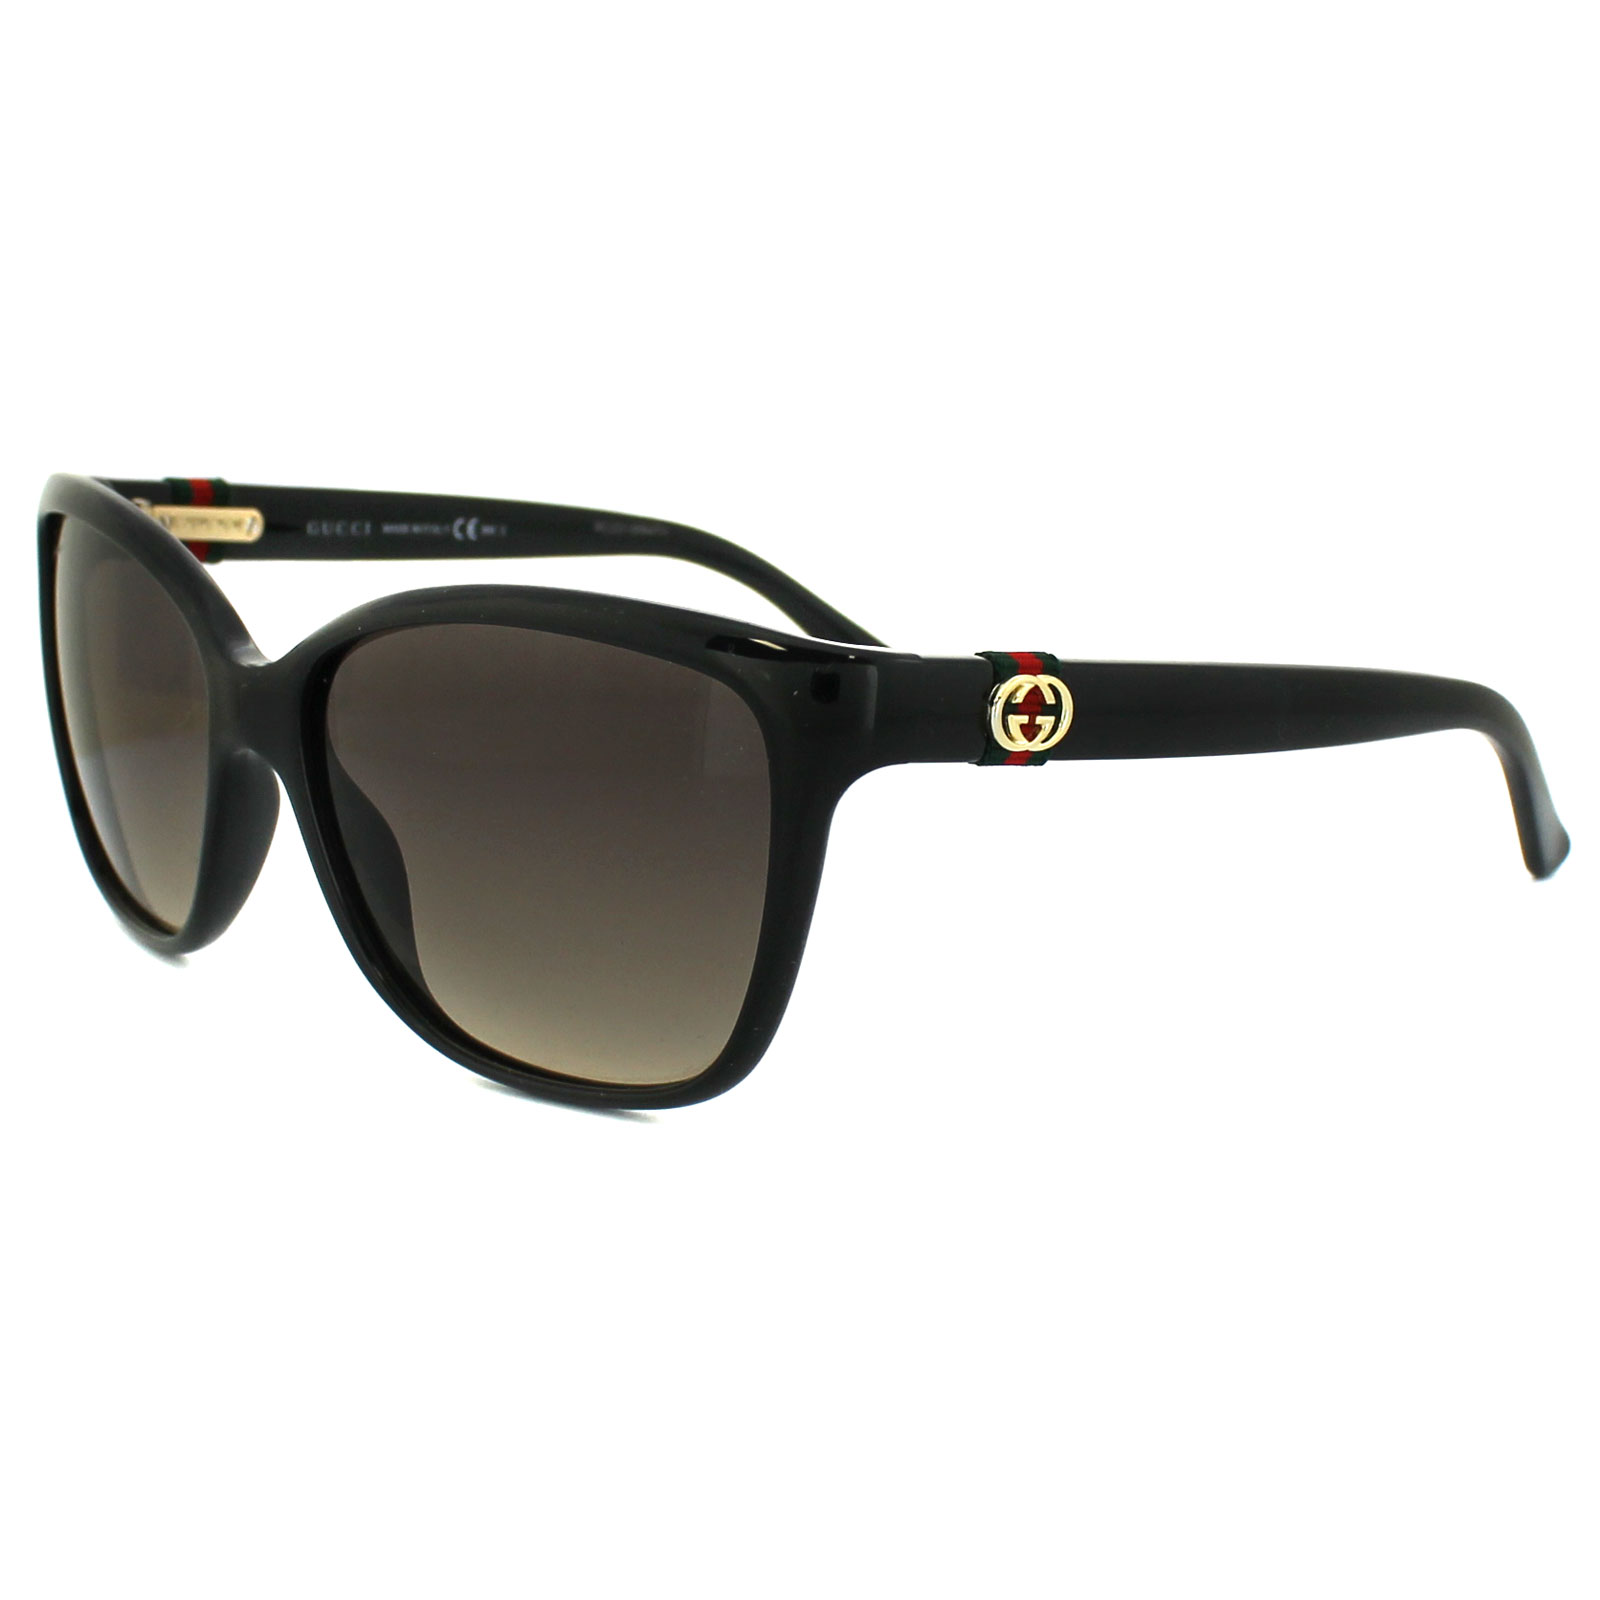 94737359f560 Gucci Butterfly Sunglasses Ebay